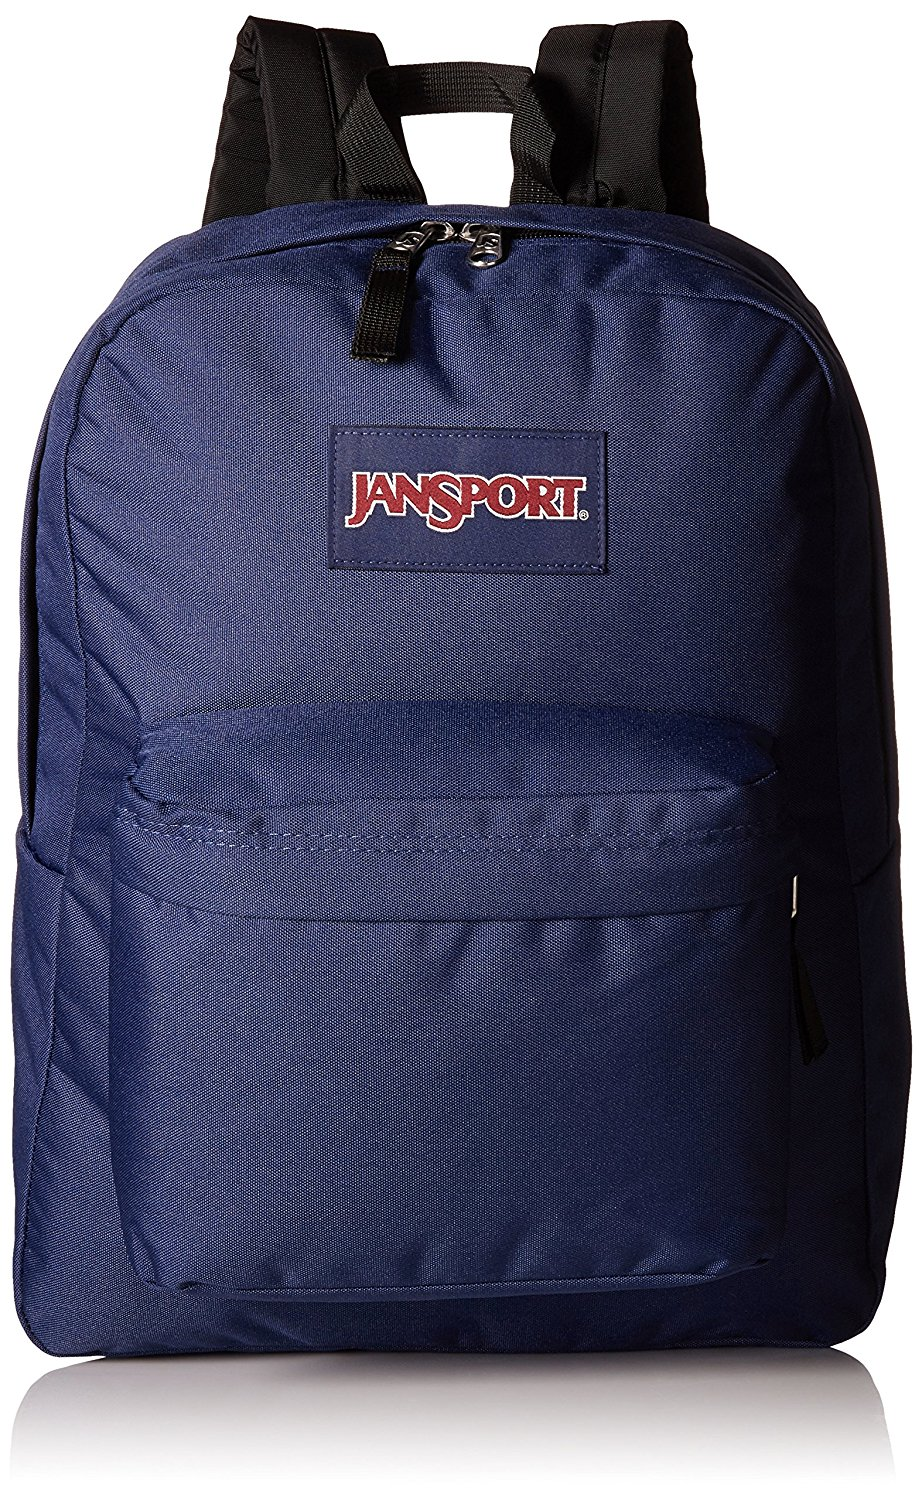 Jansport SuperBreak 25L Backpack - Navy - JS00T501003